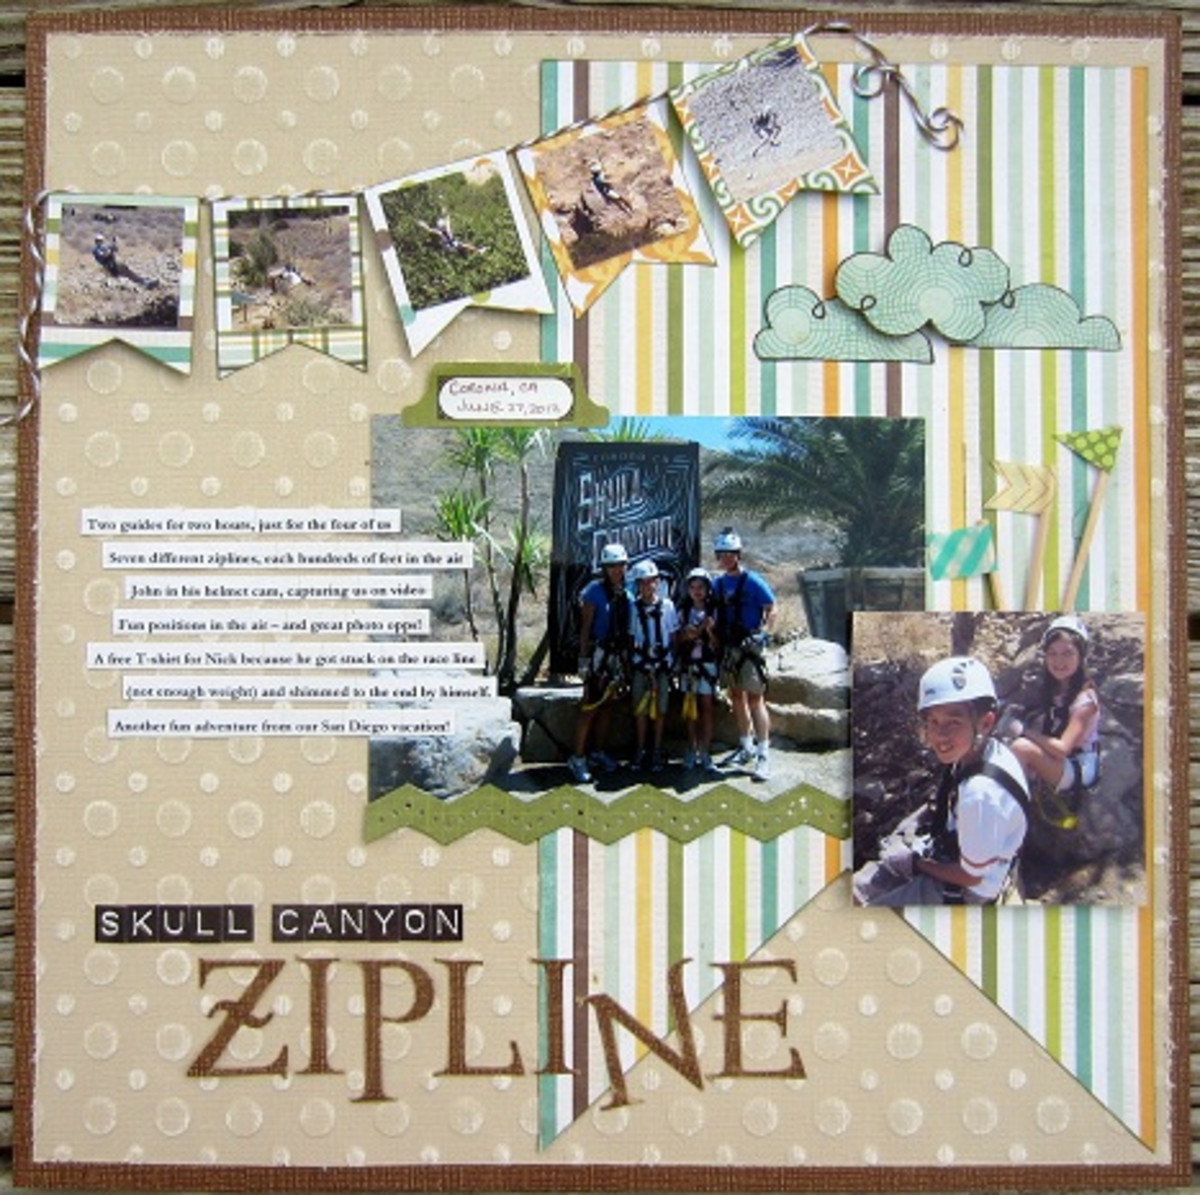 You can easily transform this scrapbook layout into a piece of hanging or tabletop framed art.